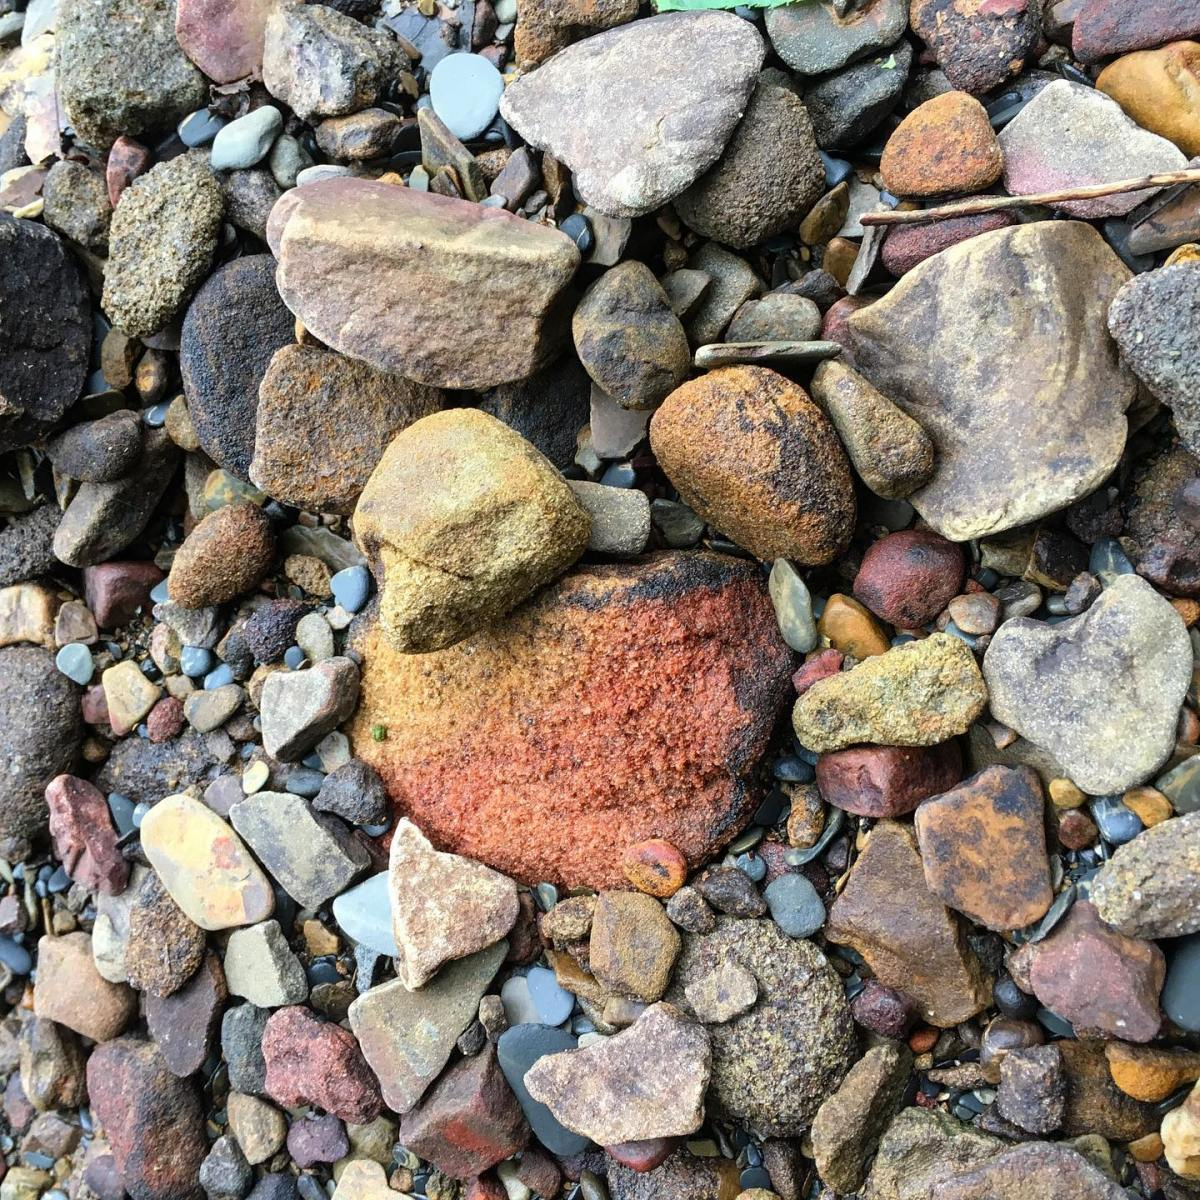 This rock will make a great pigment.